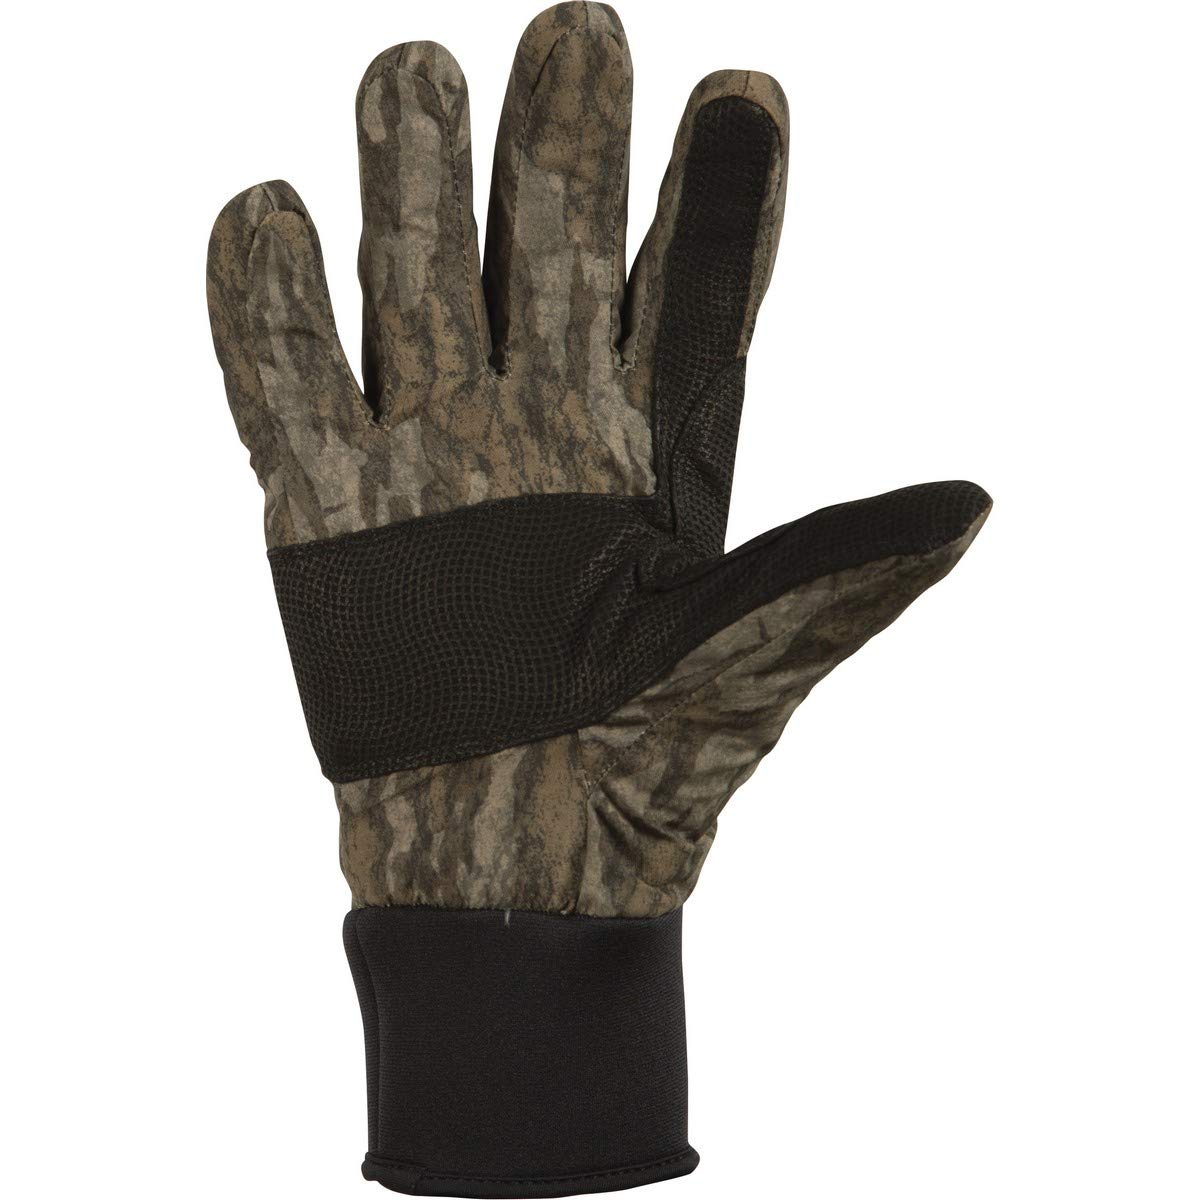 Drake MST Refuge GORE-TEX Waterproof Insulated Gloves Polyester by Drake